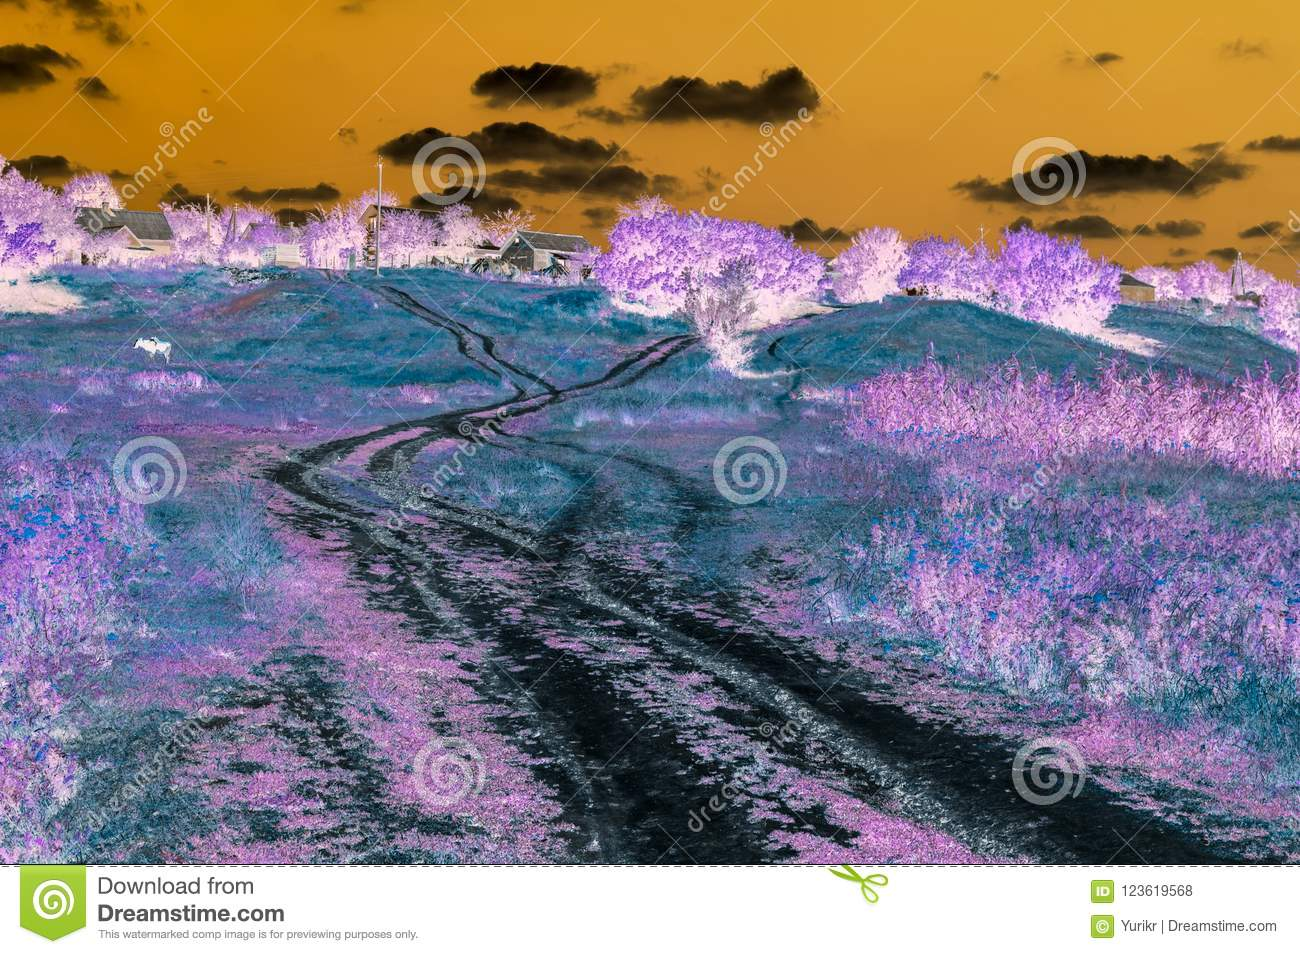 Abstract digital picture of landscape with country road leading to houses on the hill